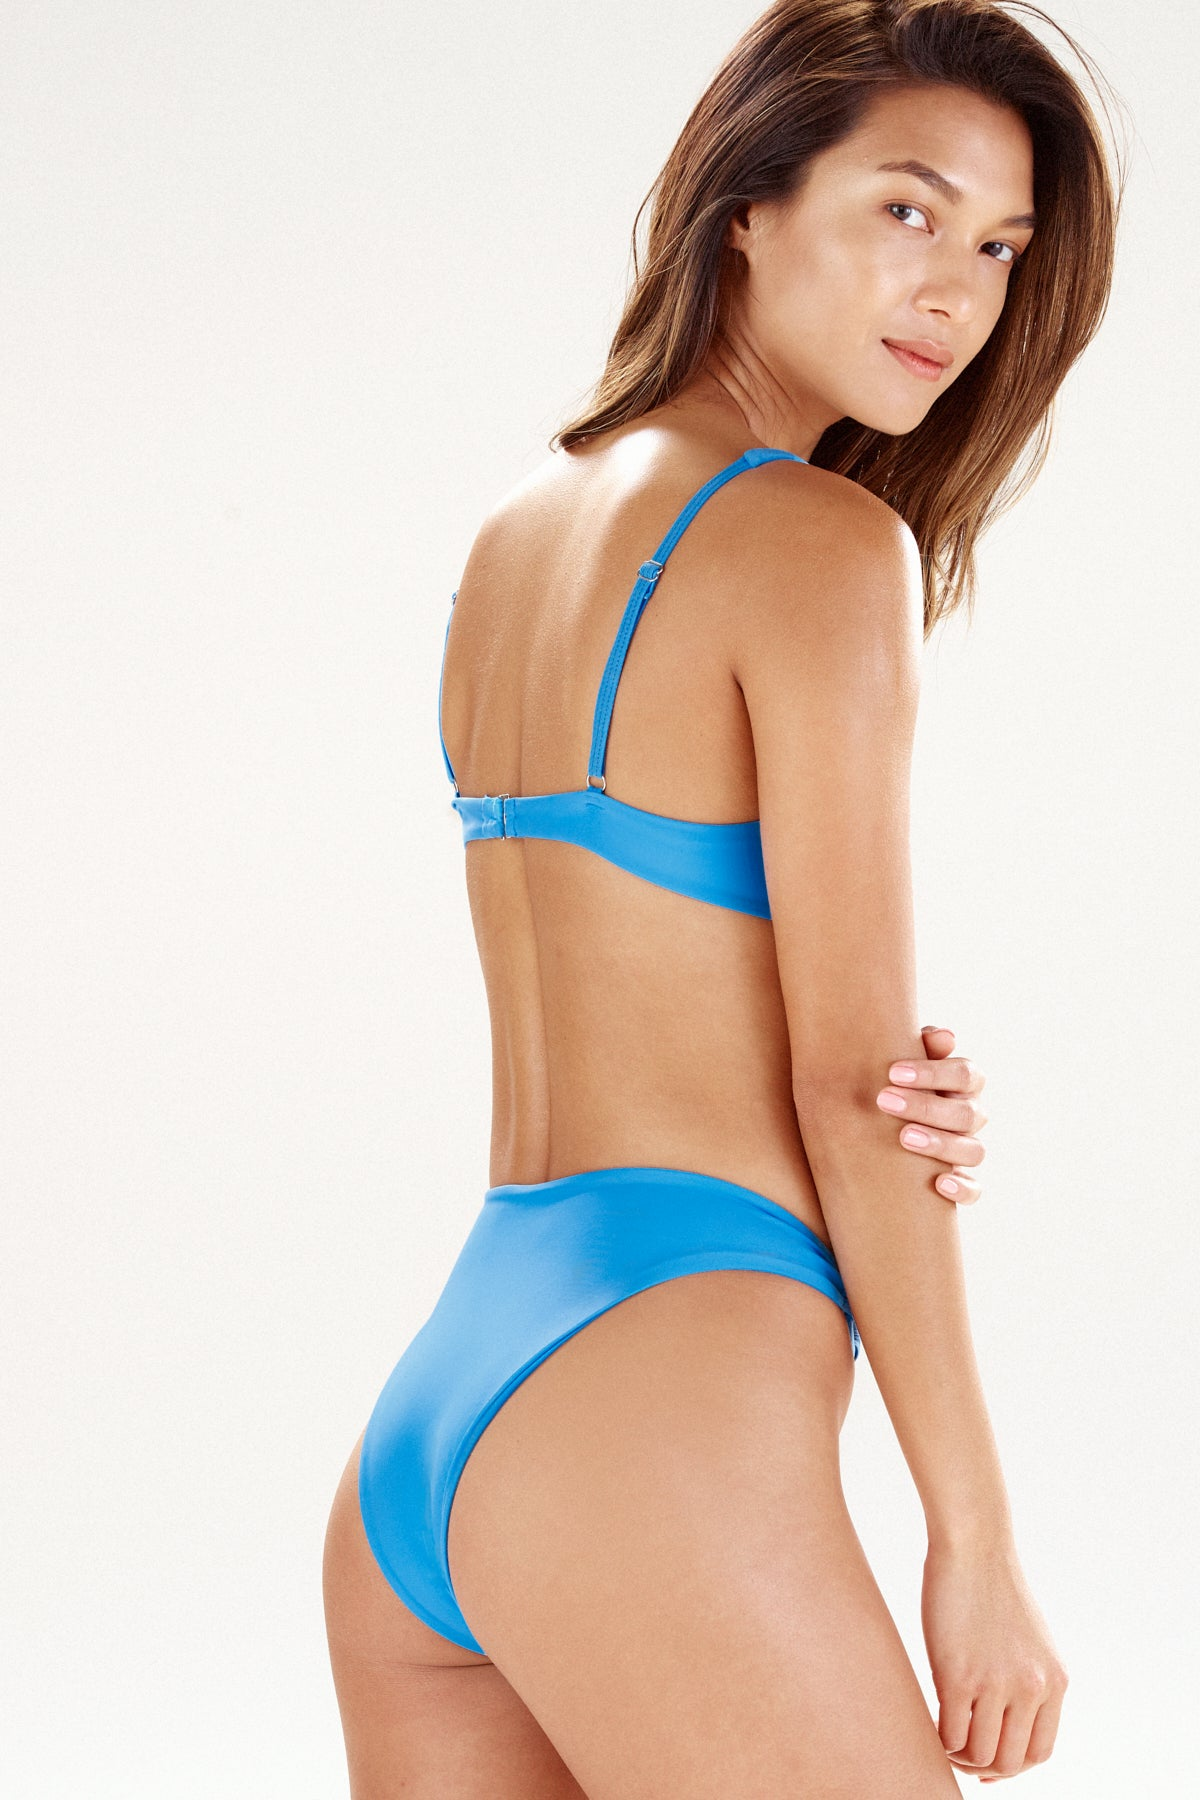 Side view of girl in flag blue bikini bottom Monaco by Ookioh